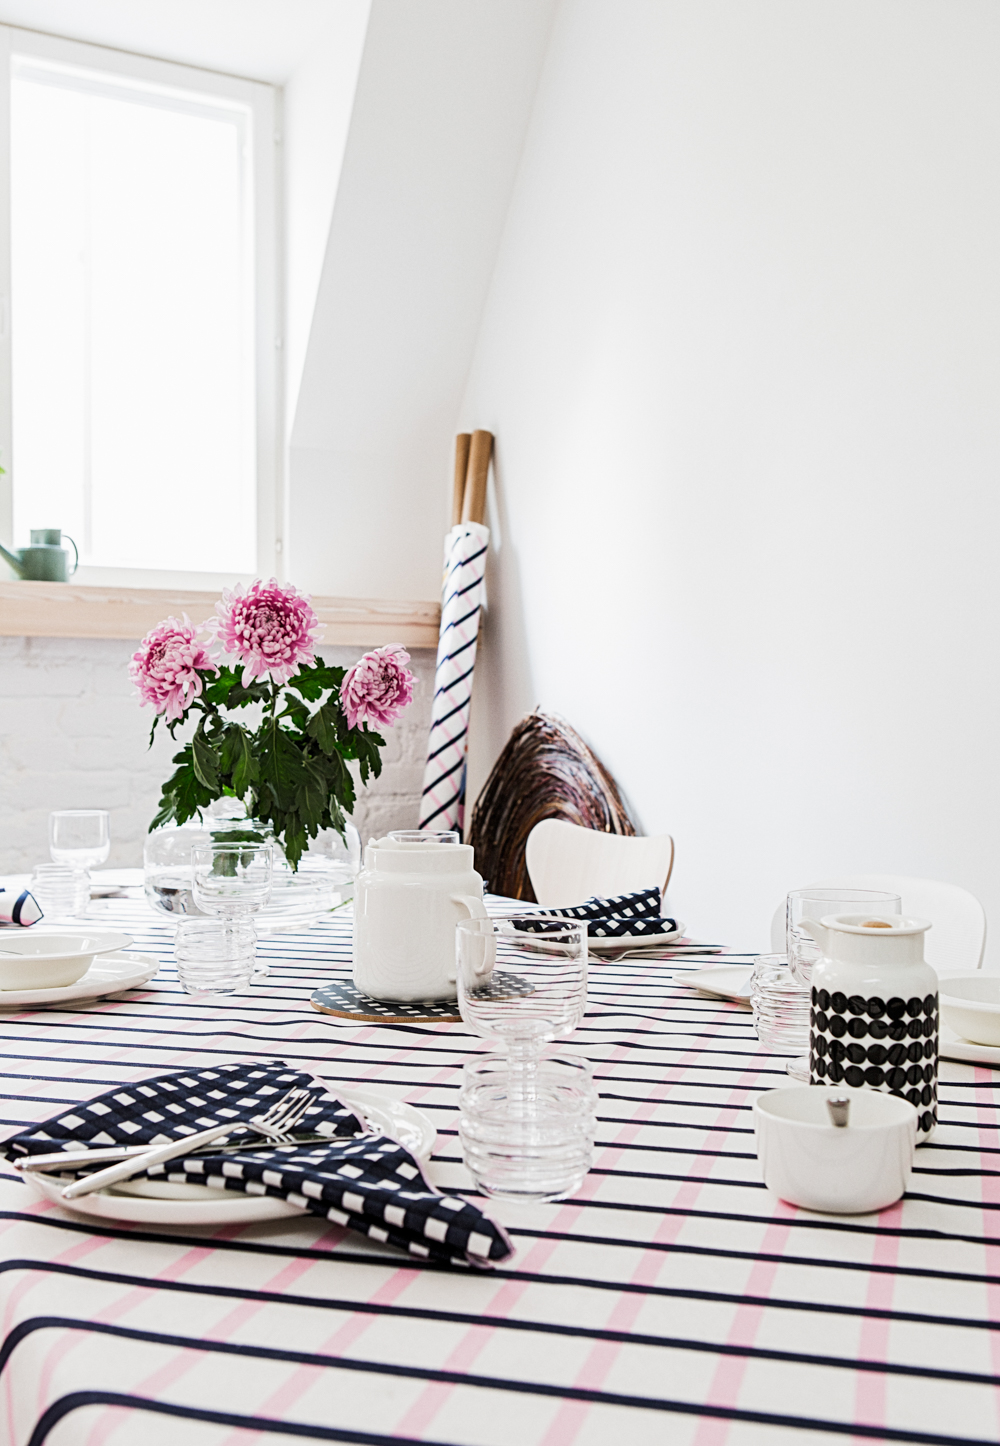 Marimekko ss16 No home without you blog  (5 of 10)